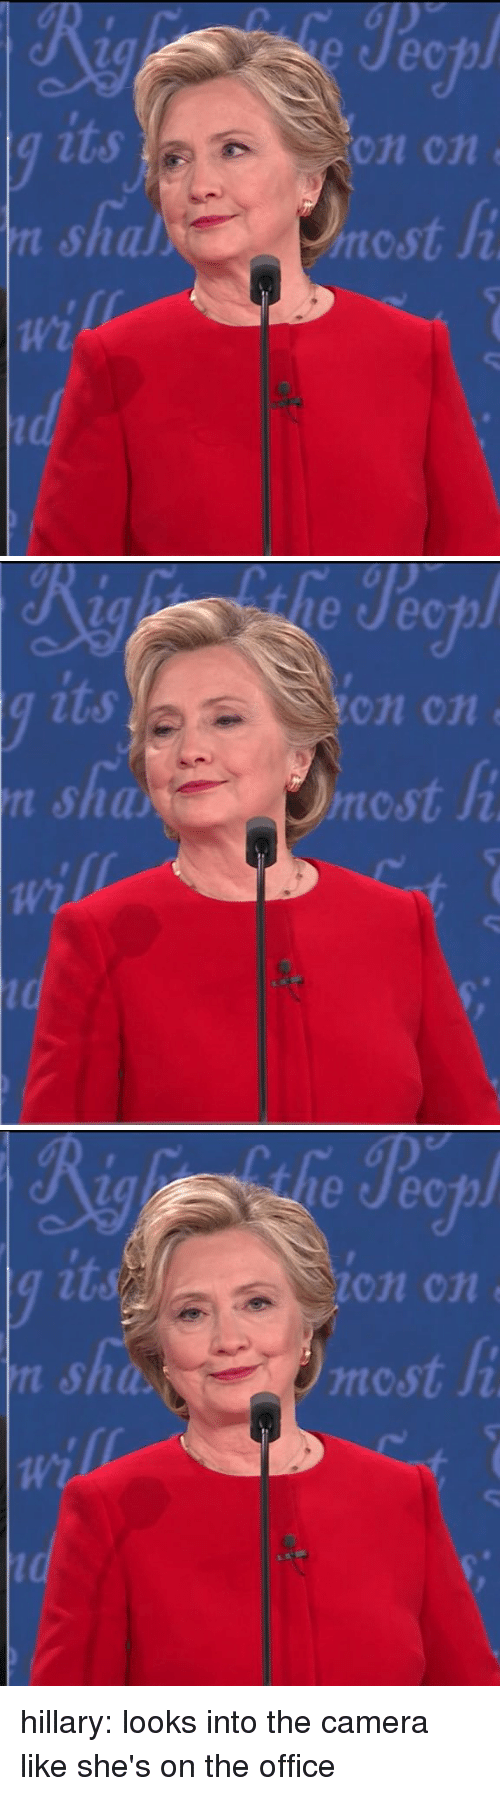 osha: n shal  Wi  On Cn  ncst   on cn e  rncst  Ji   osha,  le Jeep  on cn hillary: looks into the camera like she's on the office